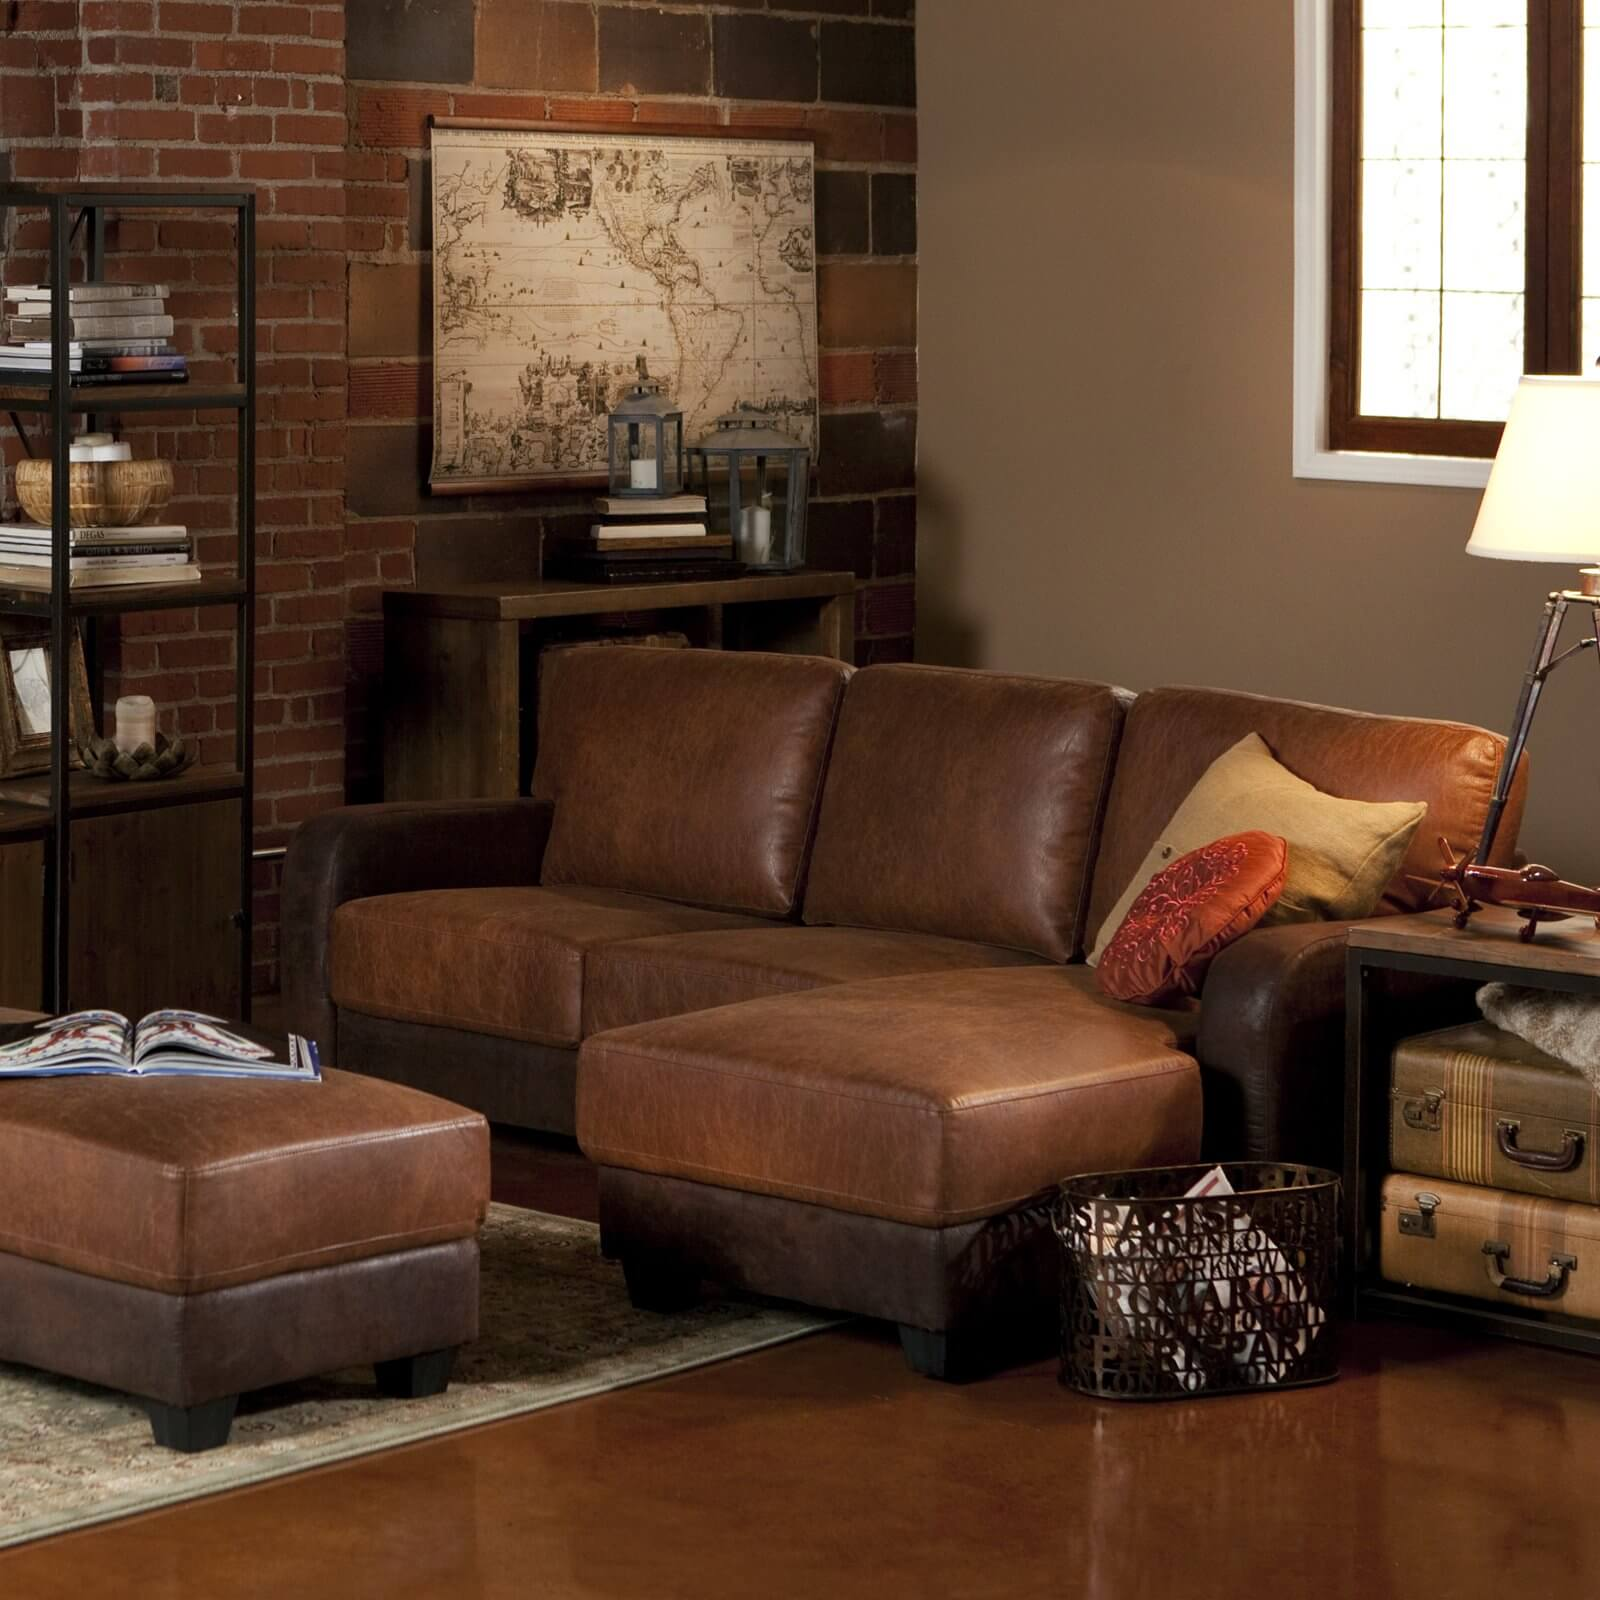 This sectional from Abbyson is 100 percent polyester with bonded leather accents, which makes it a durable choice for a family with young children or pets.